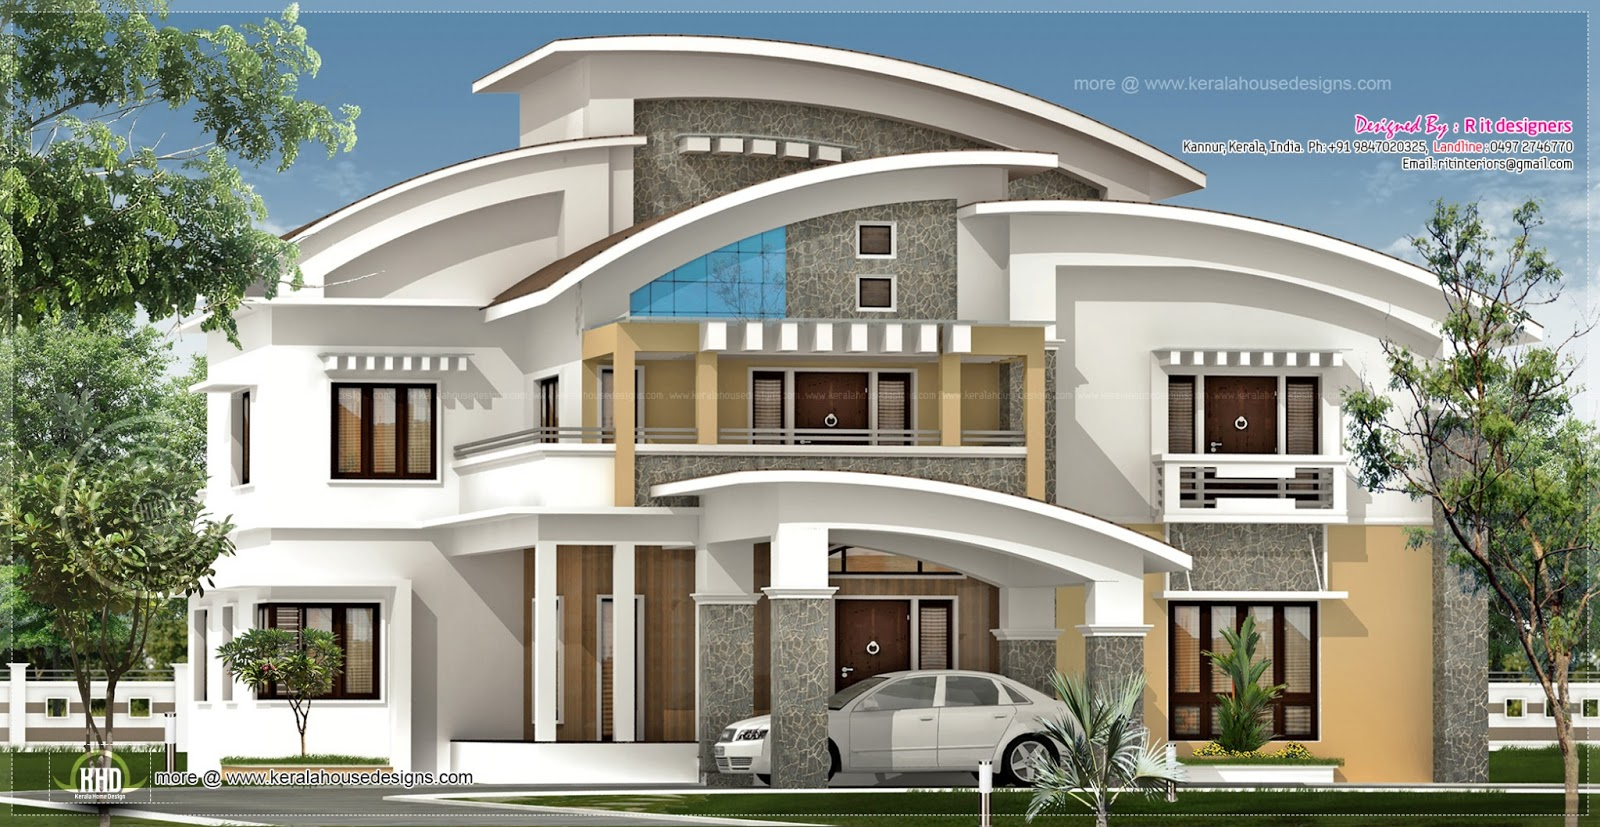 Small luxury house plans luxury house plans and designs for Luxury house designs and floor plans